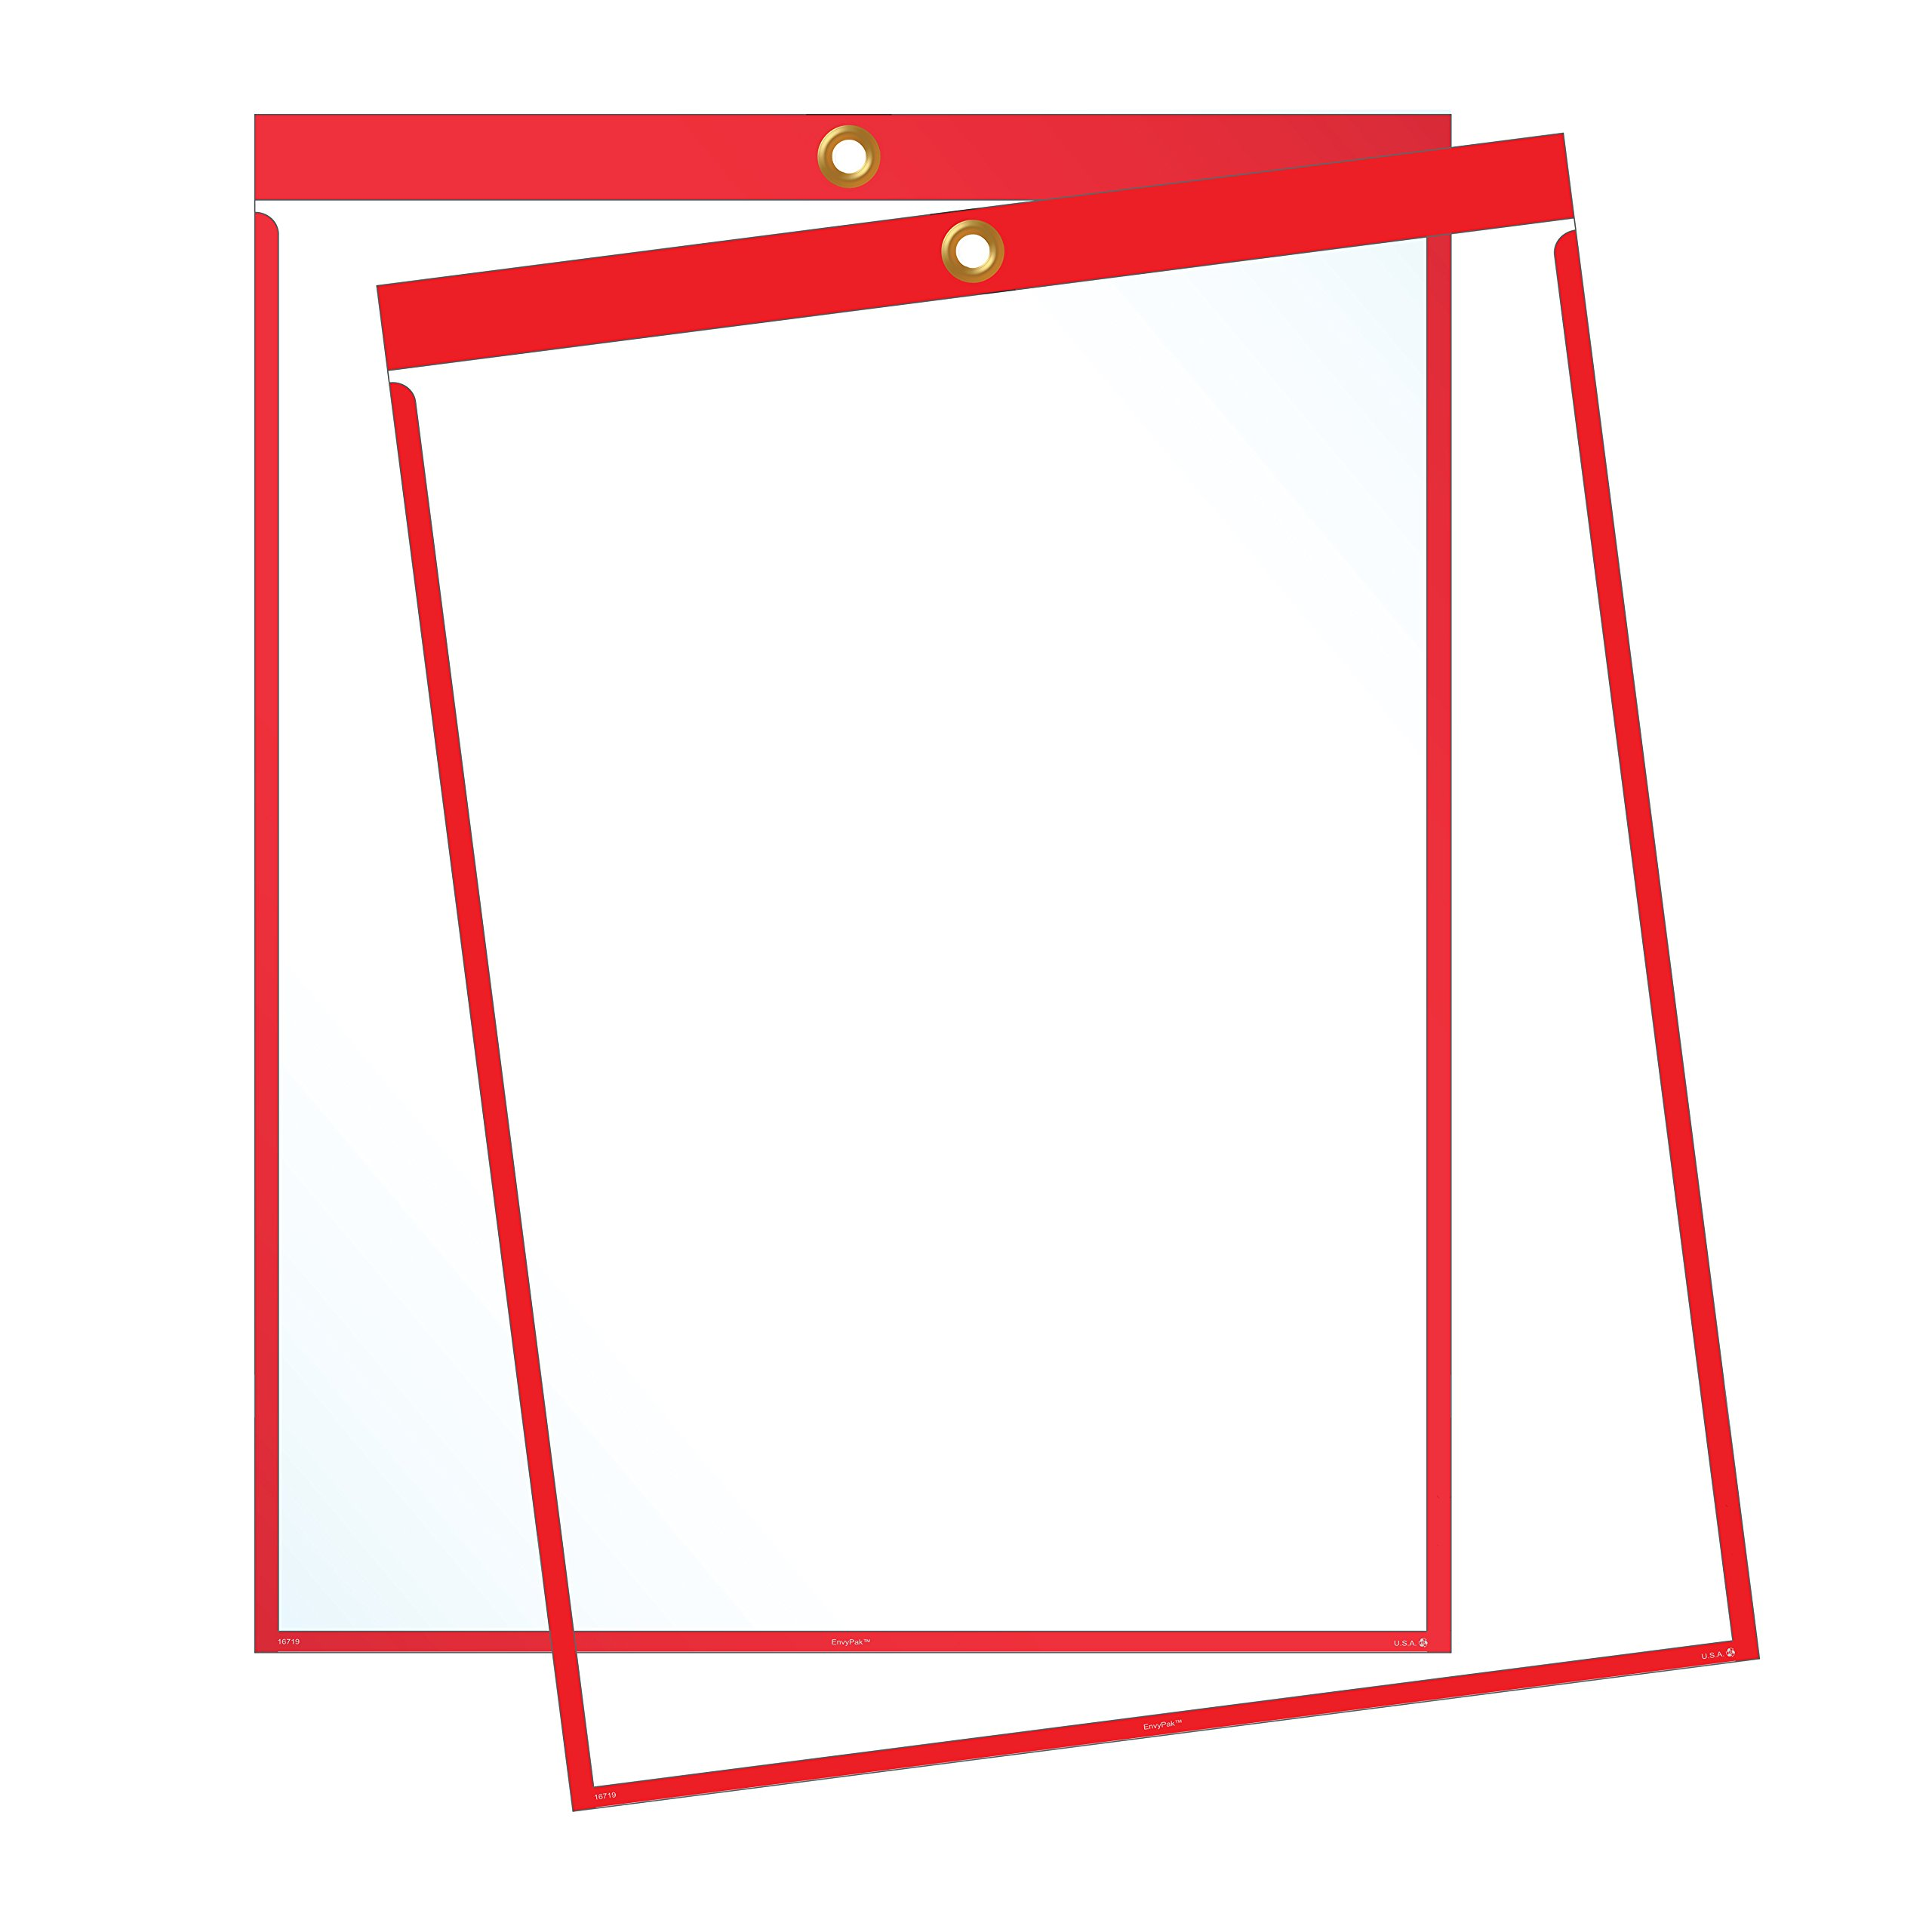 EnvyPak Job Ticket Holders - 9''x12'' - Pack of 30 (red) Top-Loading with Eyelet for Hanging by EnvyPak